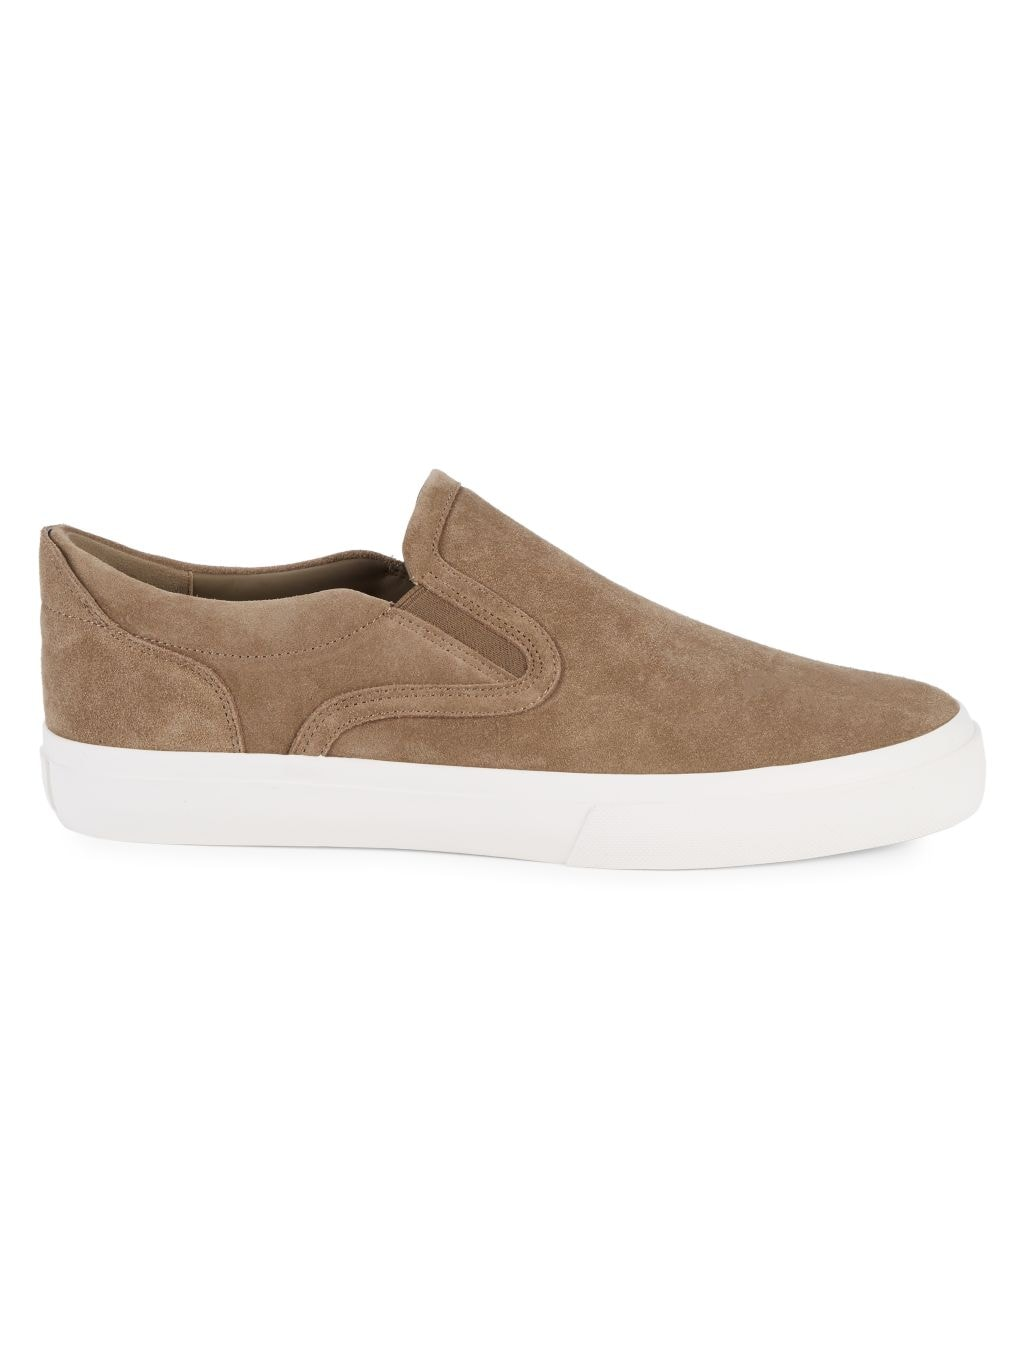 Vince Fairfax Suede Slip-On Sneakers